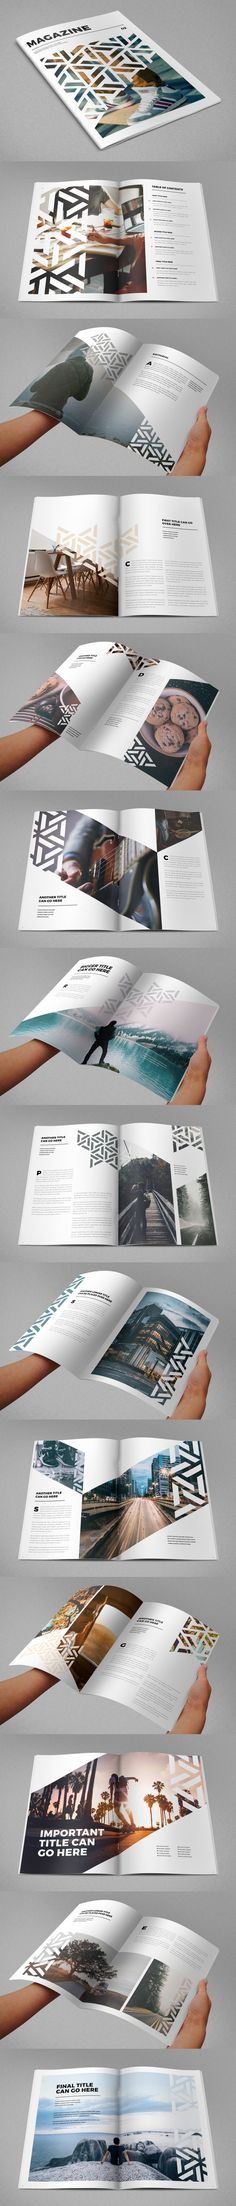 I really like the funky geometric shapes used within the photos, it gives the magazine a unique and clean look. -Kyrene Modern Cool Pattern Magazine Template InDesign INDD - 28 Custom Pages Mises En Page Design Graphique, Art Graphique, Design Editorial, Editorial Layout, Graphisches Design, Print Design, Design Trends, Pattern Design, Modern Design